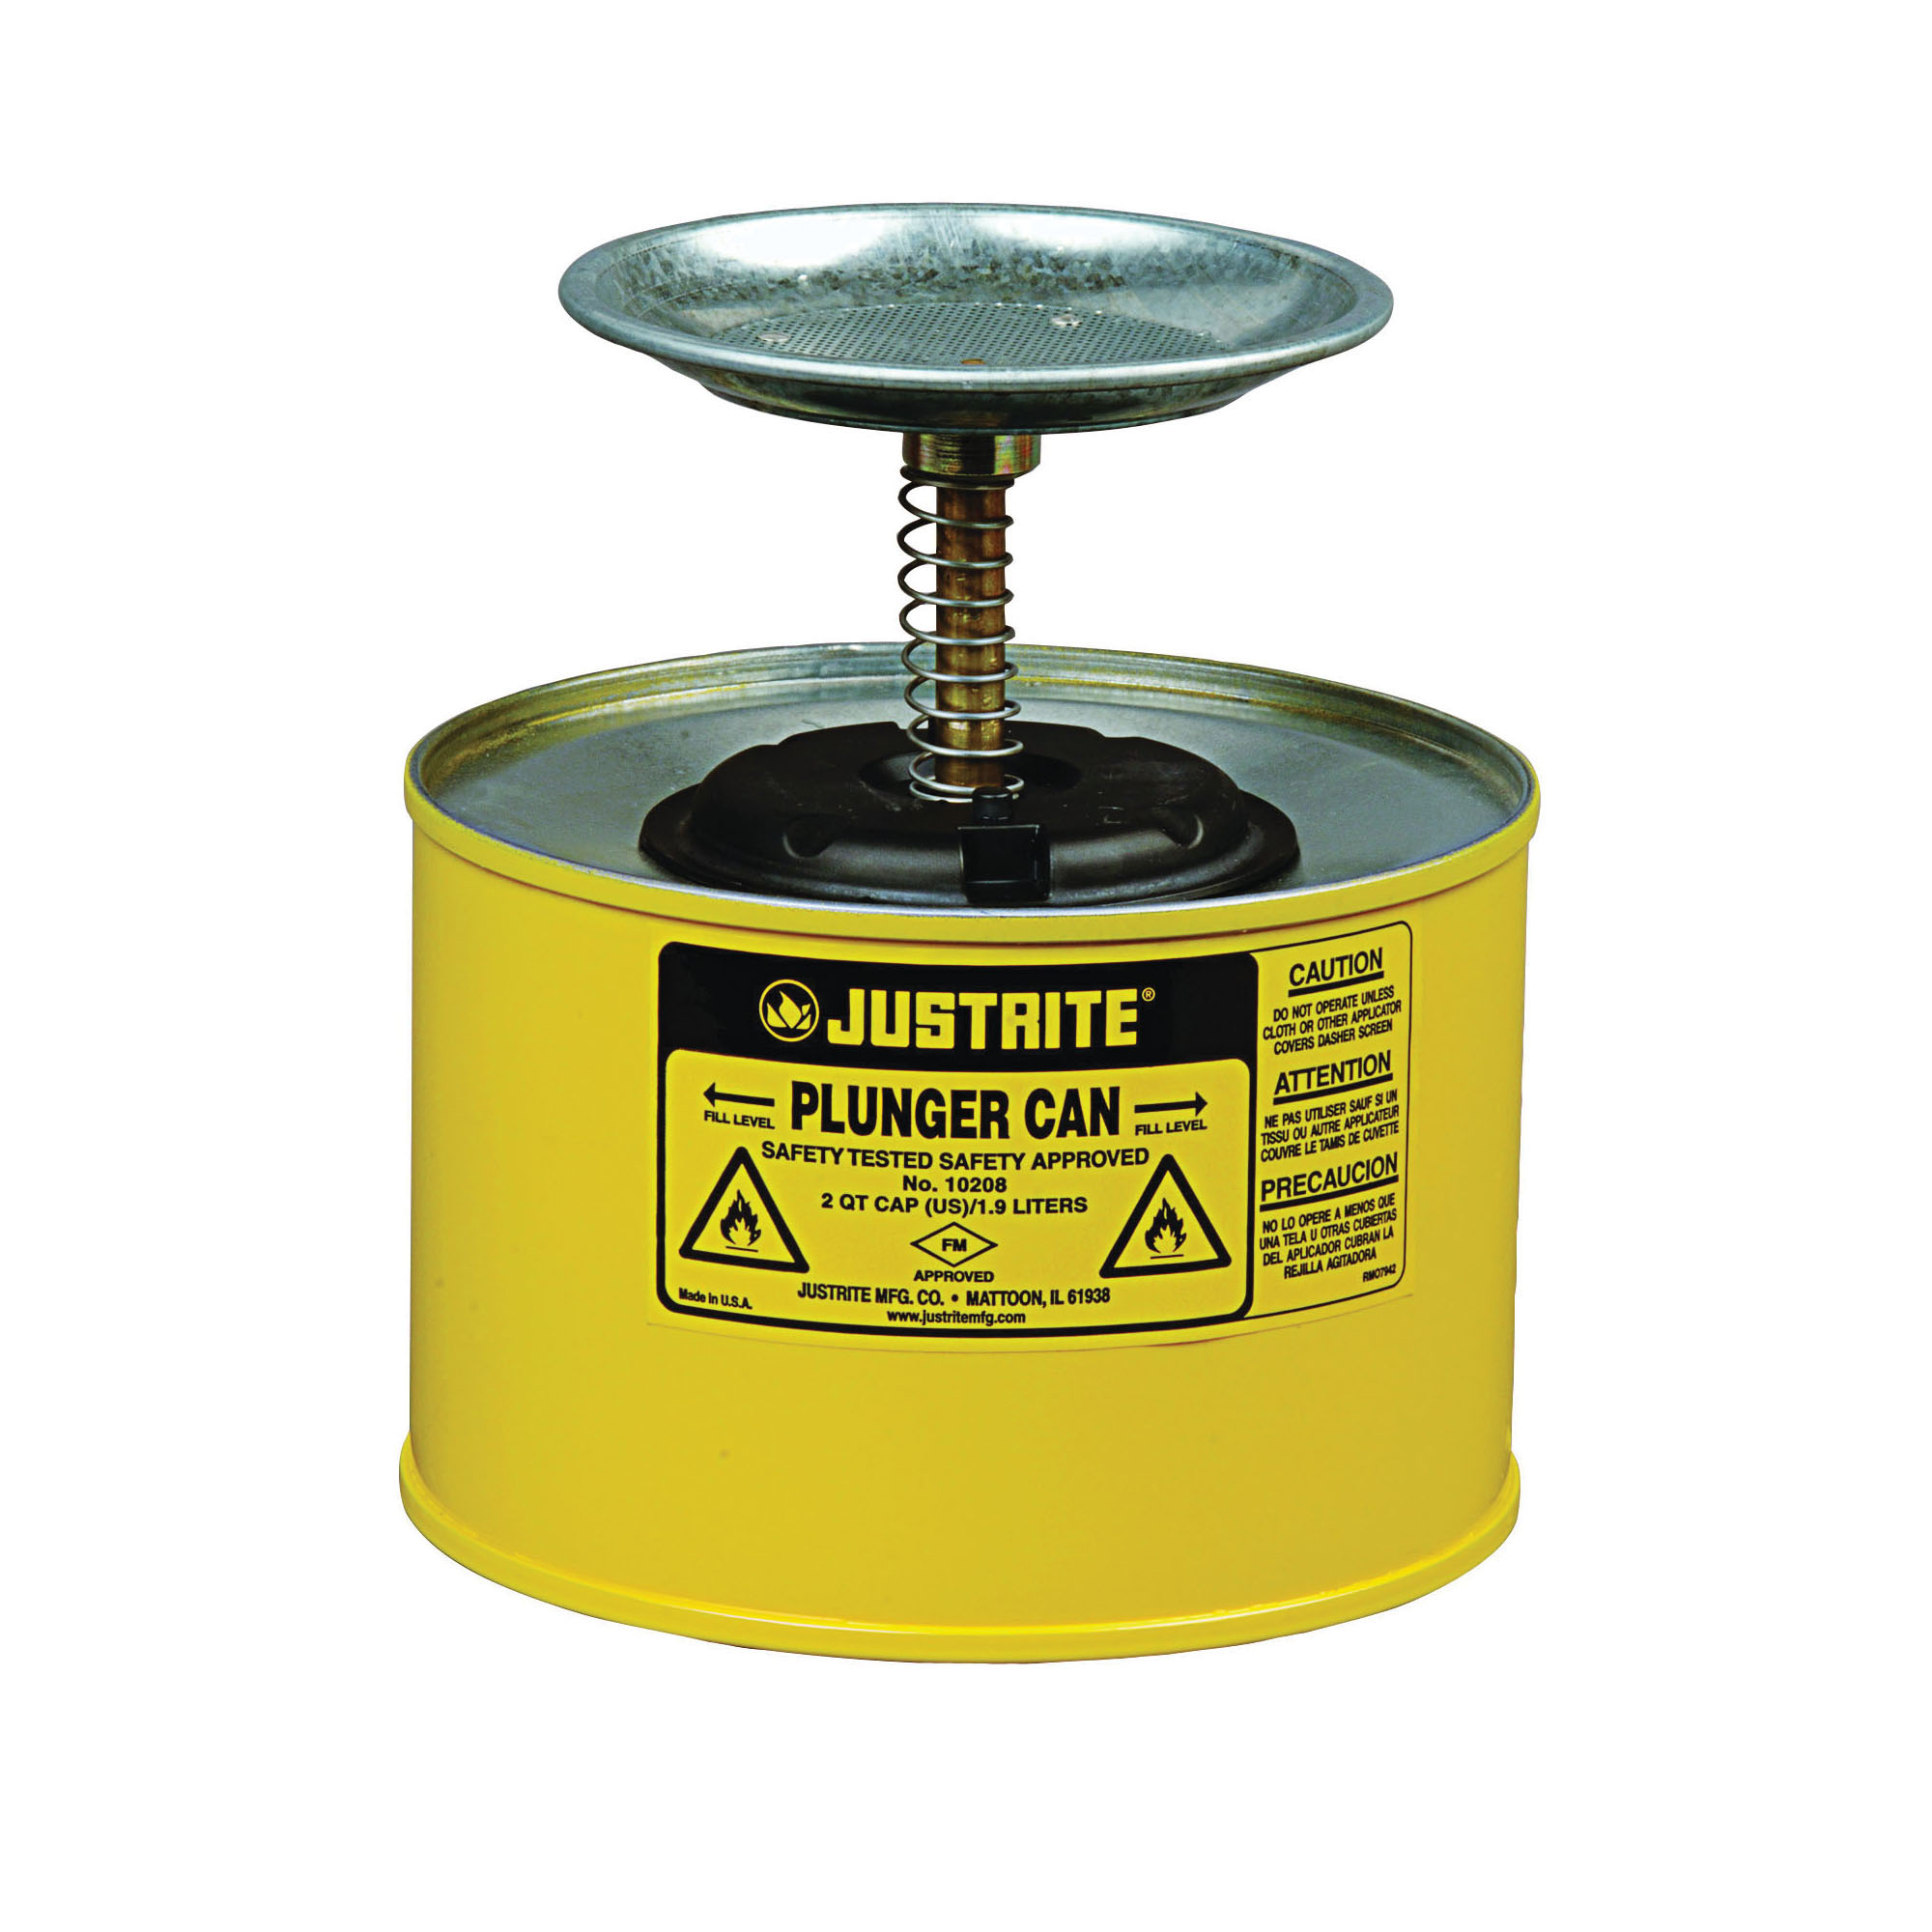 Justrite® 10218 Plunger Dispensing Can, 2 qt, Steel, Yellow, Brass/Ryton® Plunger, 5 in Dia Dasher Plate